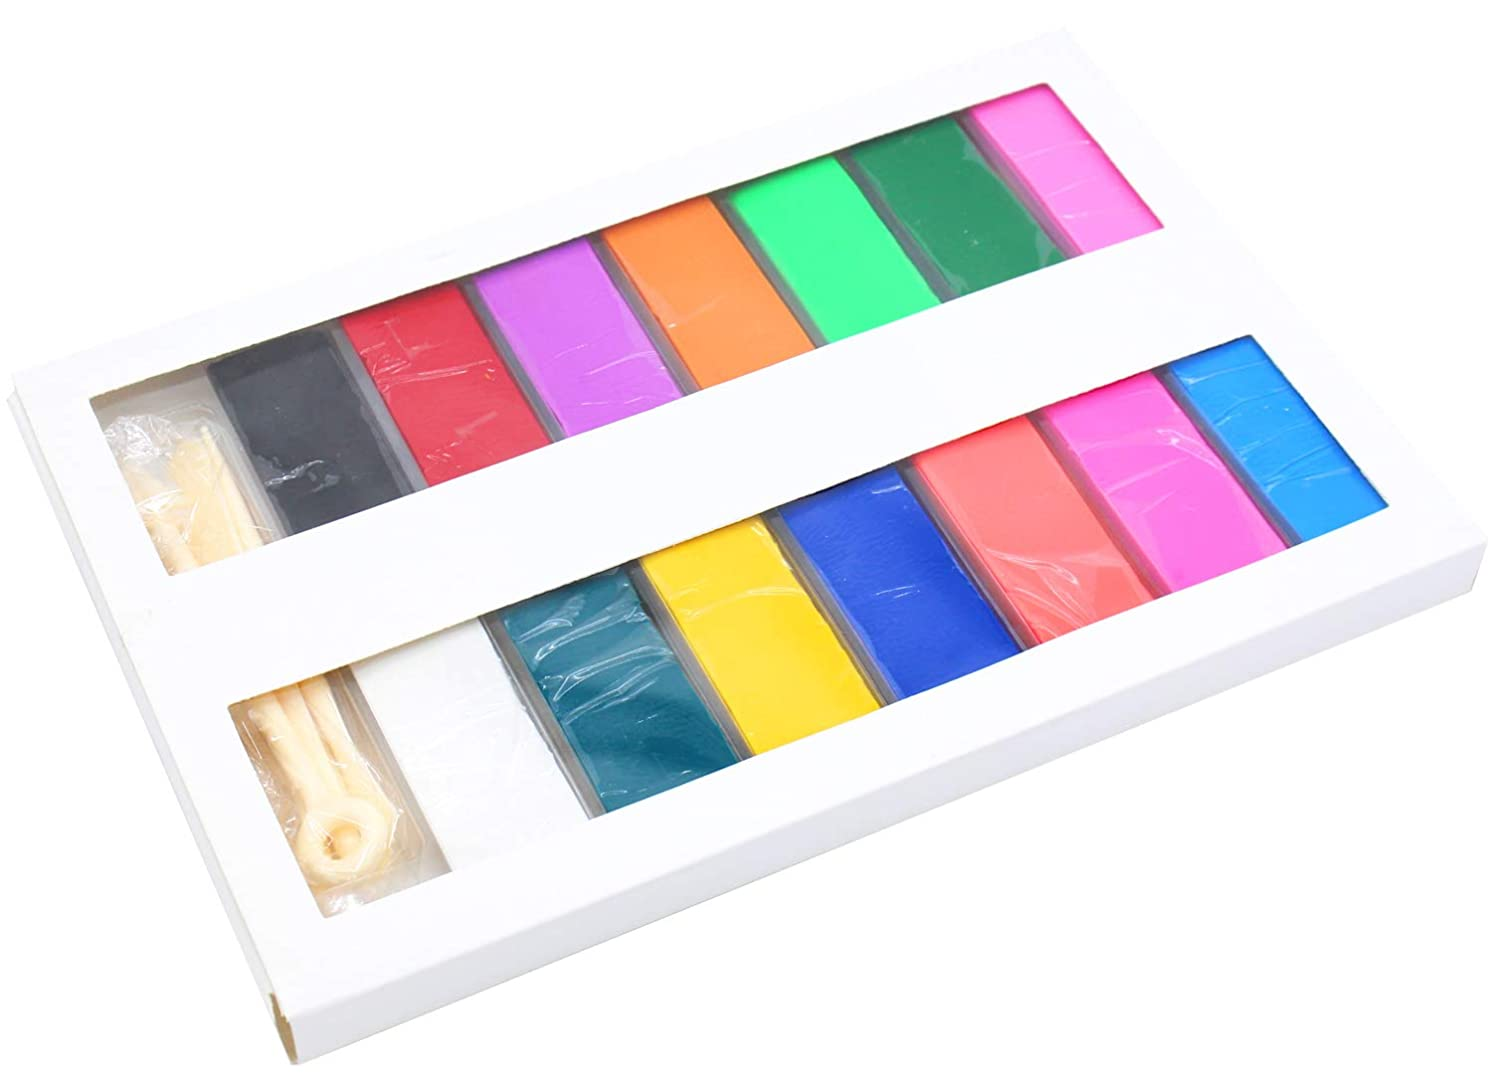 26 Pcs Colored Blocks Polymer Clay Soft Craft Oven Bake Modelling Clay with Accessories DIY Clay for Children,1.6LB